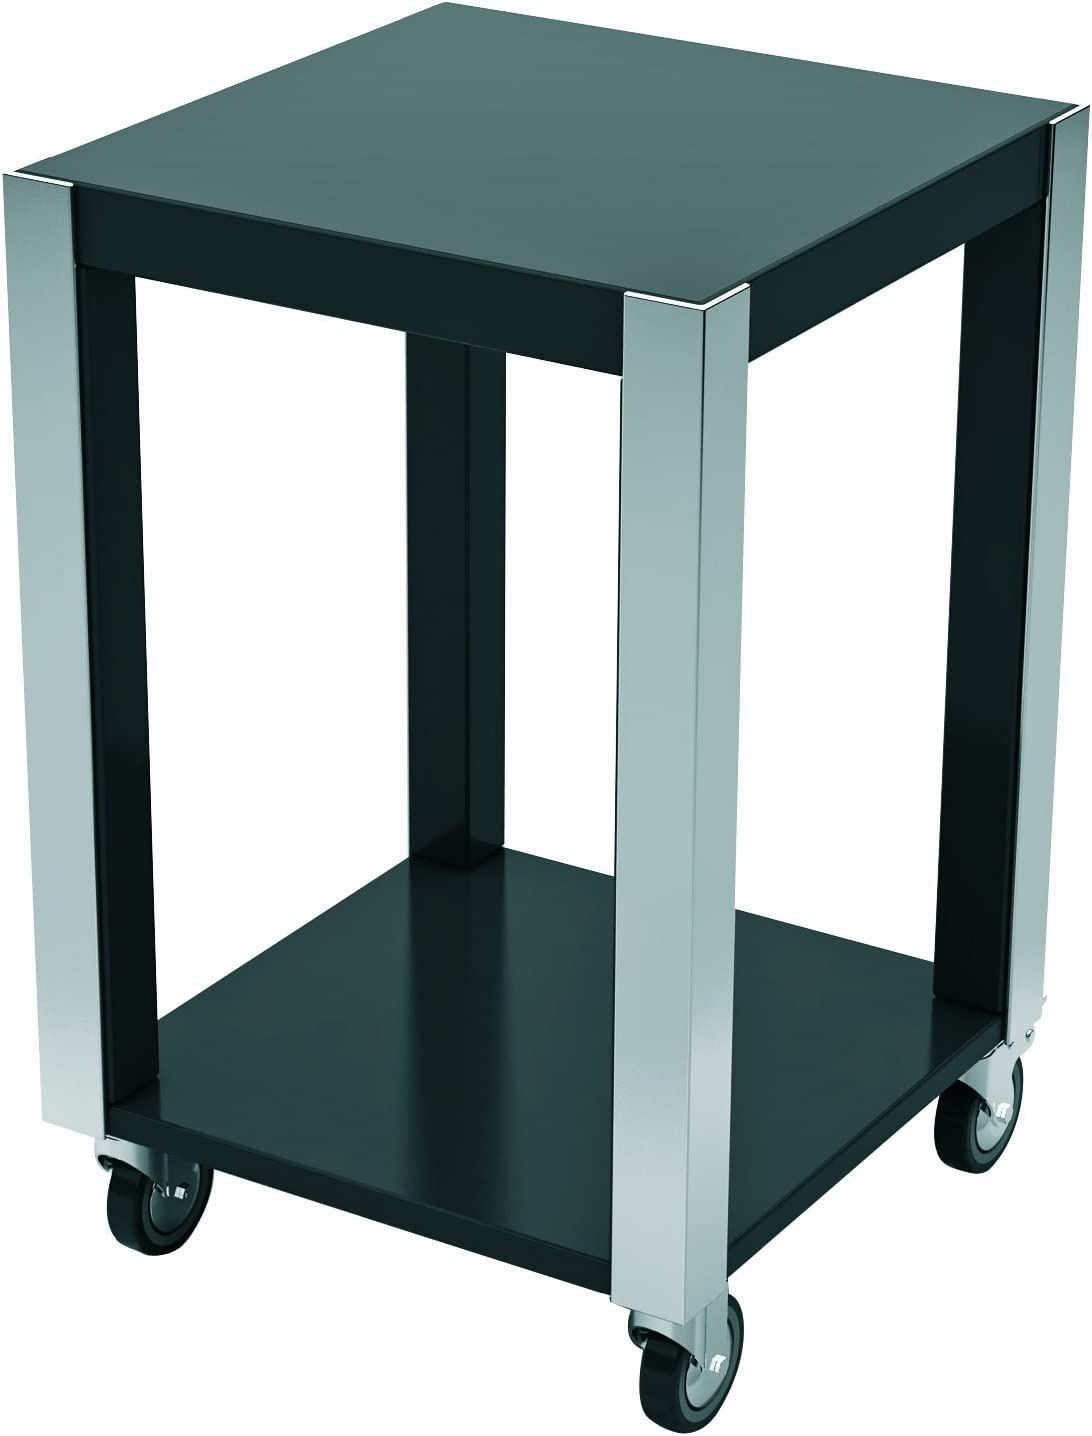 MEPRA 80001450 Buenos A Max 52% OFF Chic All items free shipping 50x50 x Black Trolley 50